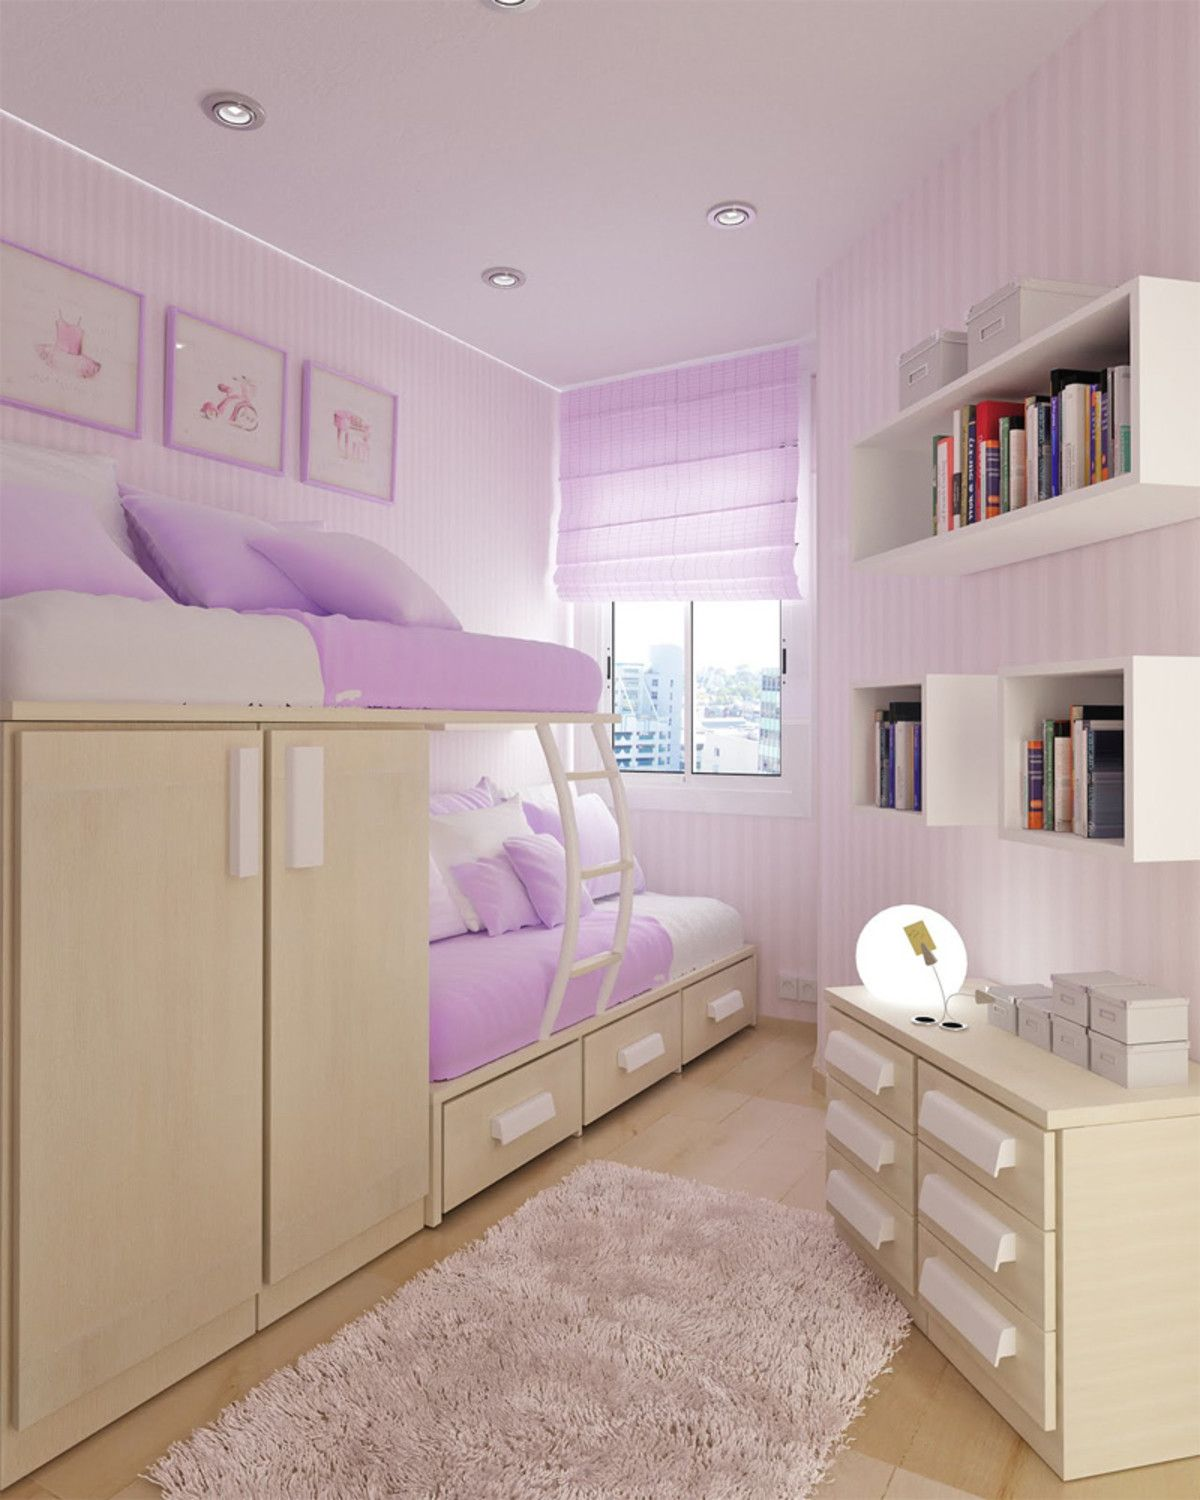 25 Bedroom Paint Ideas For Teenage Girl: Accessories & Furniture, Appealing White Wall Paint